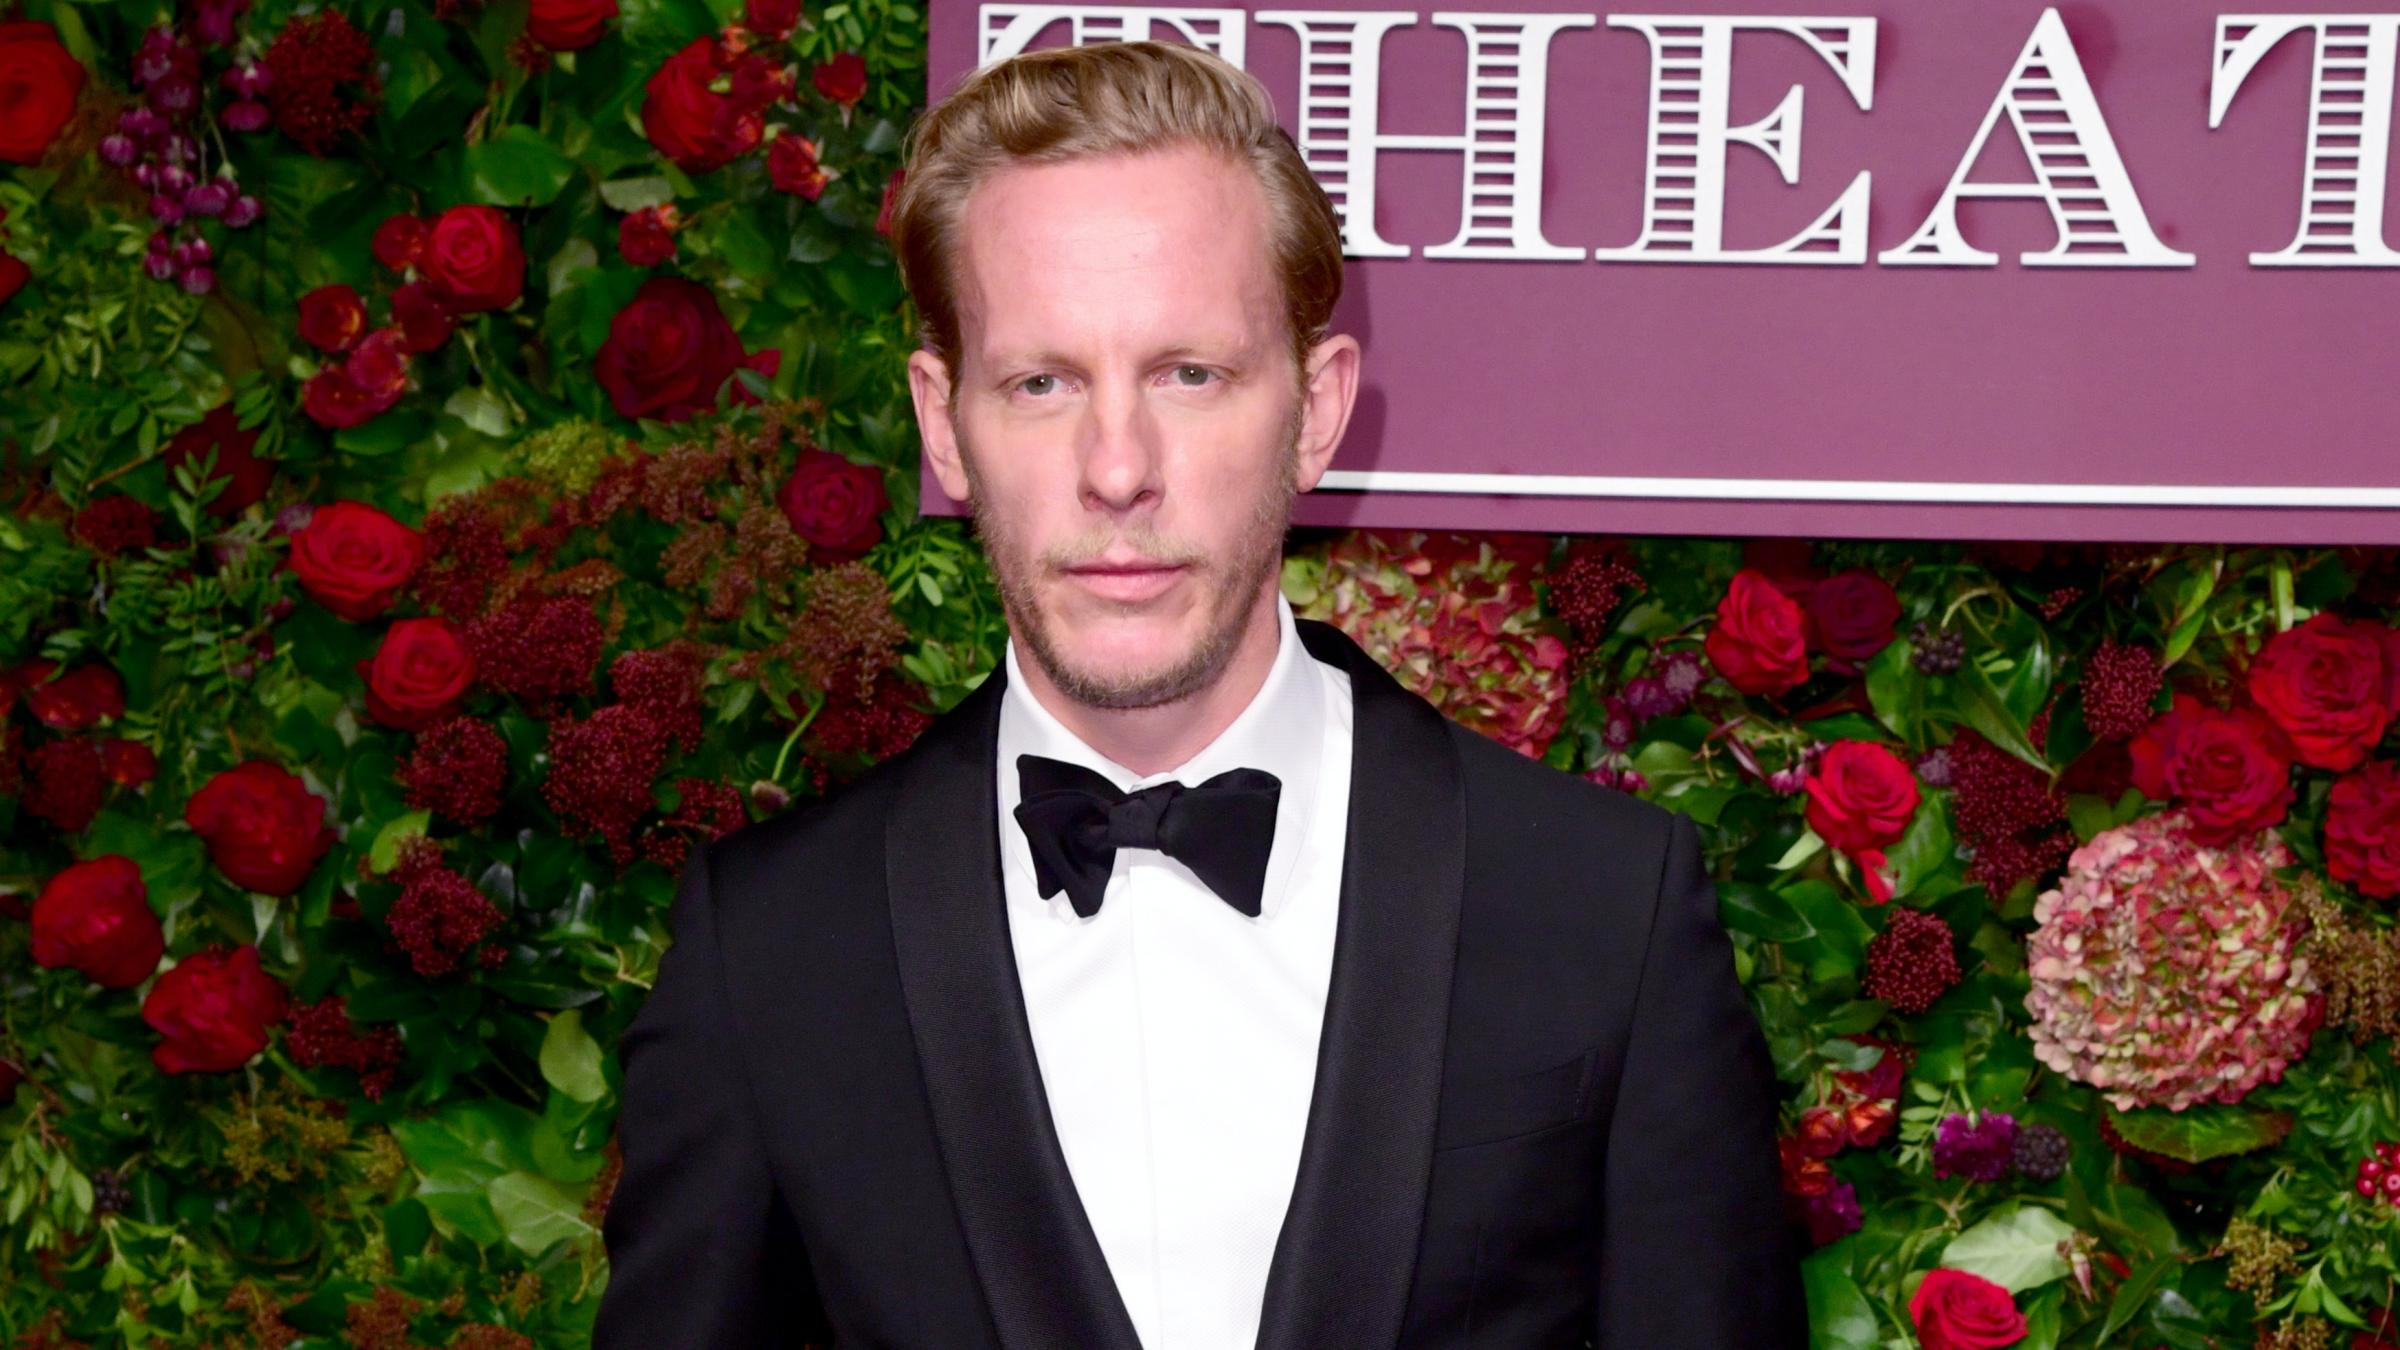 Actor Laurence Fox announces bid to run for Mayor of London